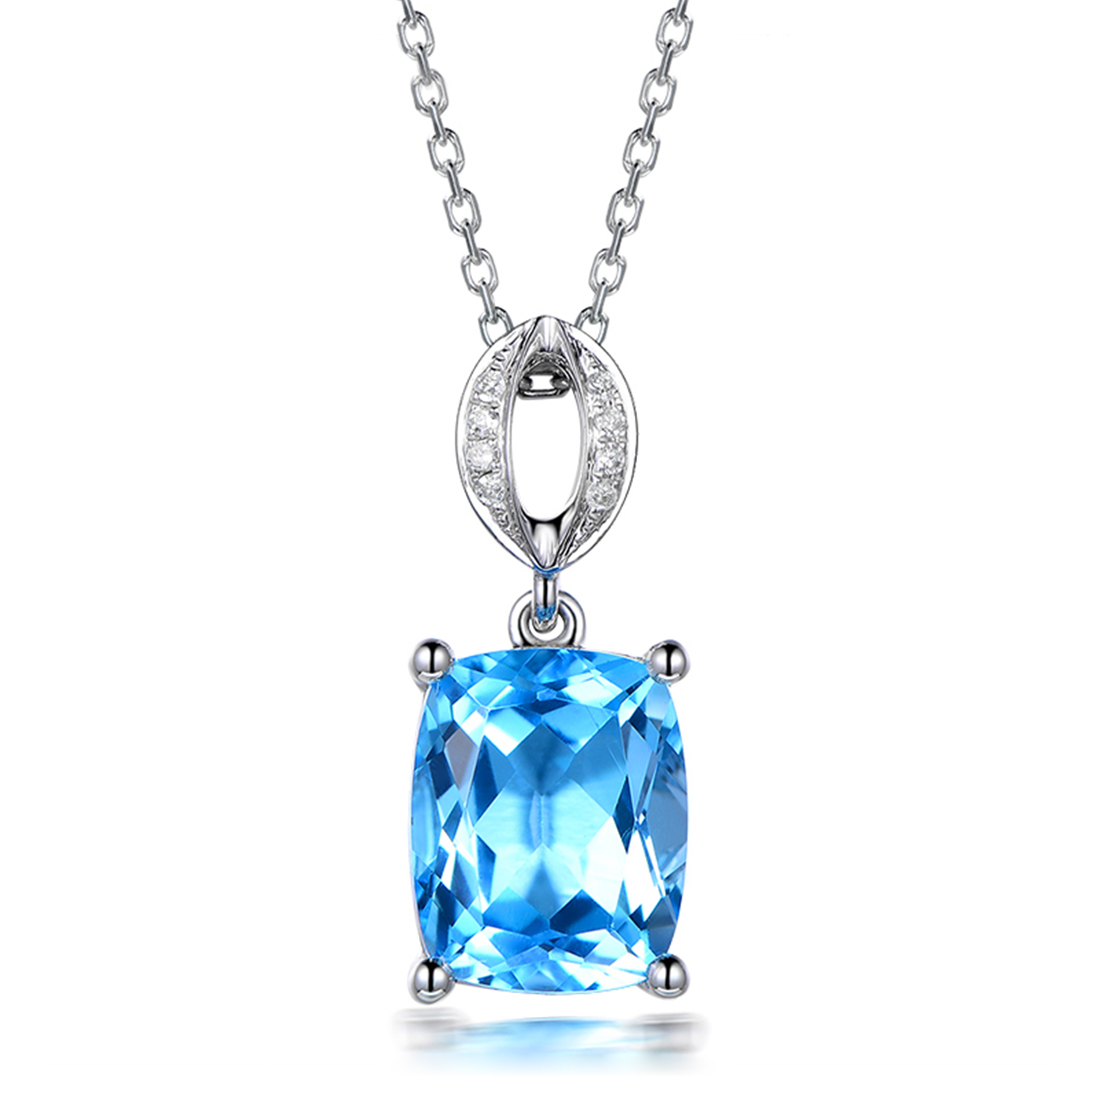 costume blue lion image pendants coeur light necklace geocube jewellery necklaces de